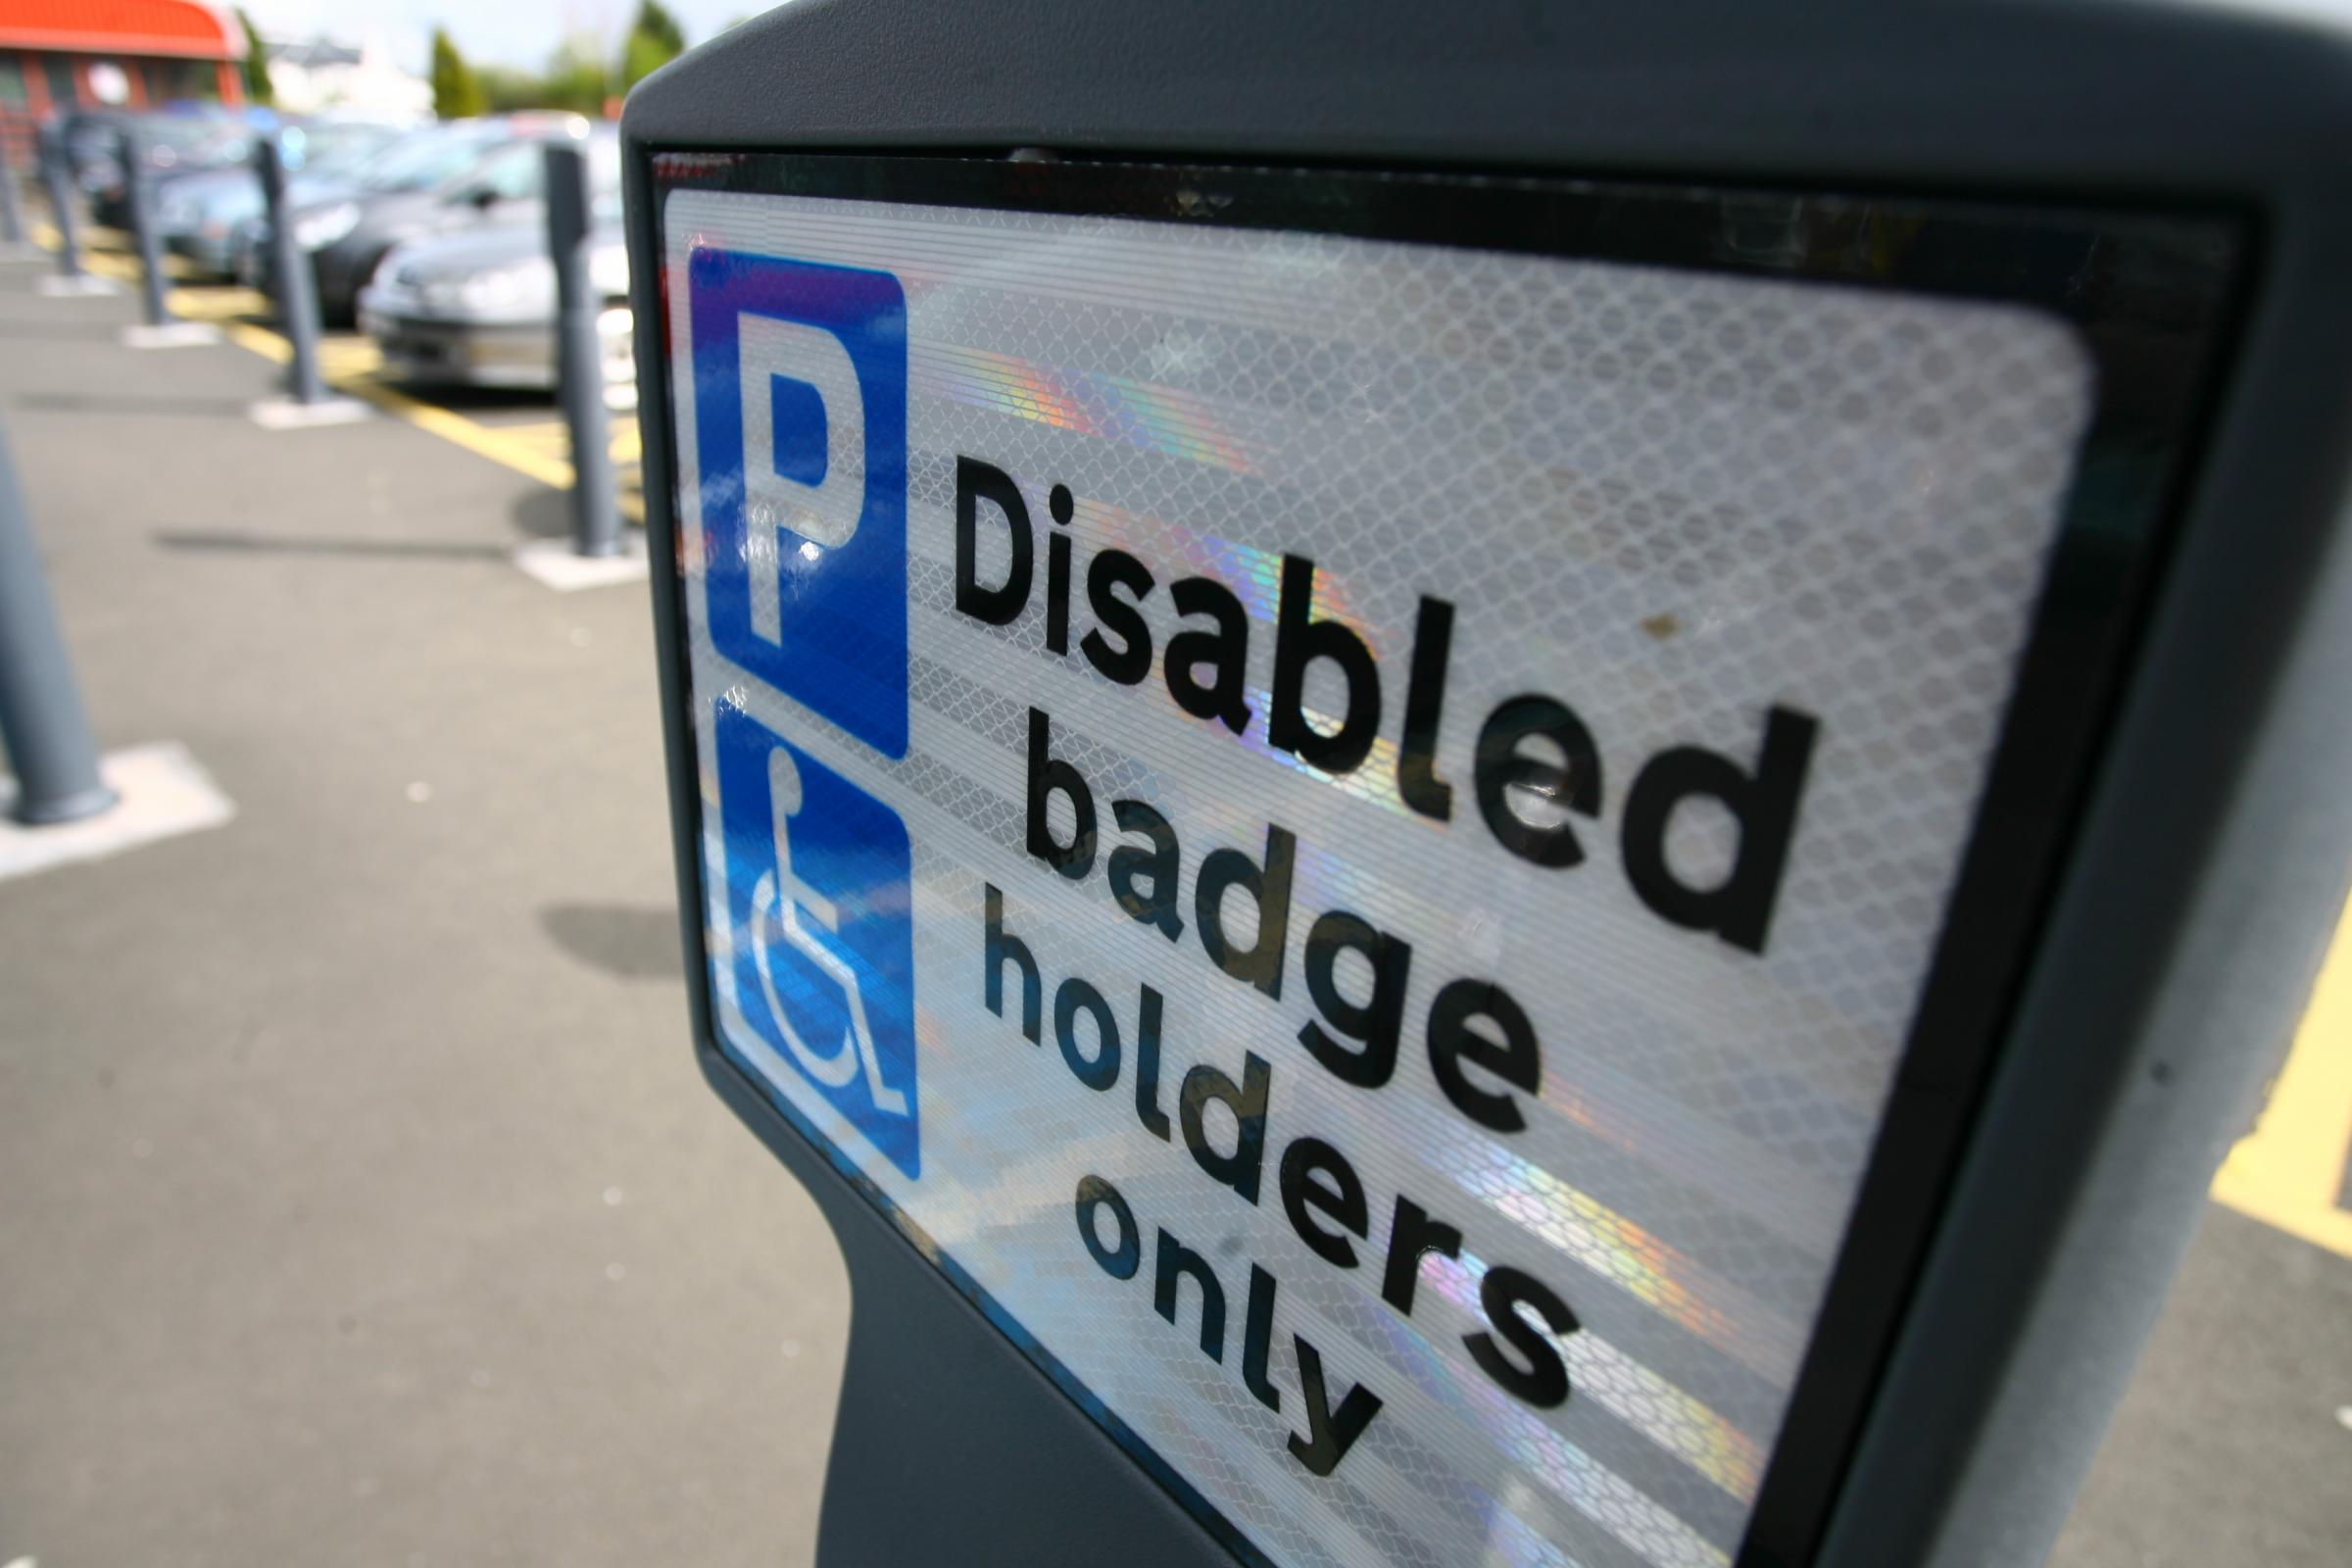 'Hefty' fines for those caught parking in NHS disabled bays